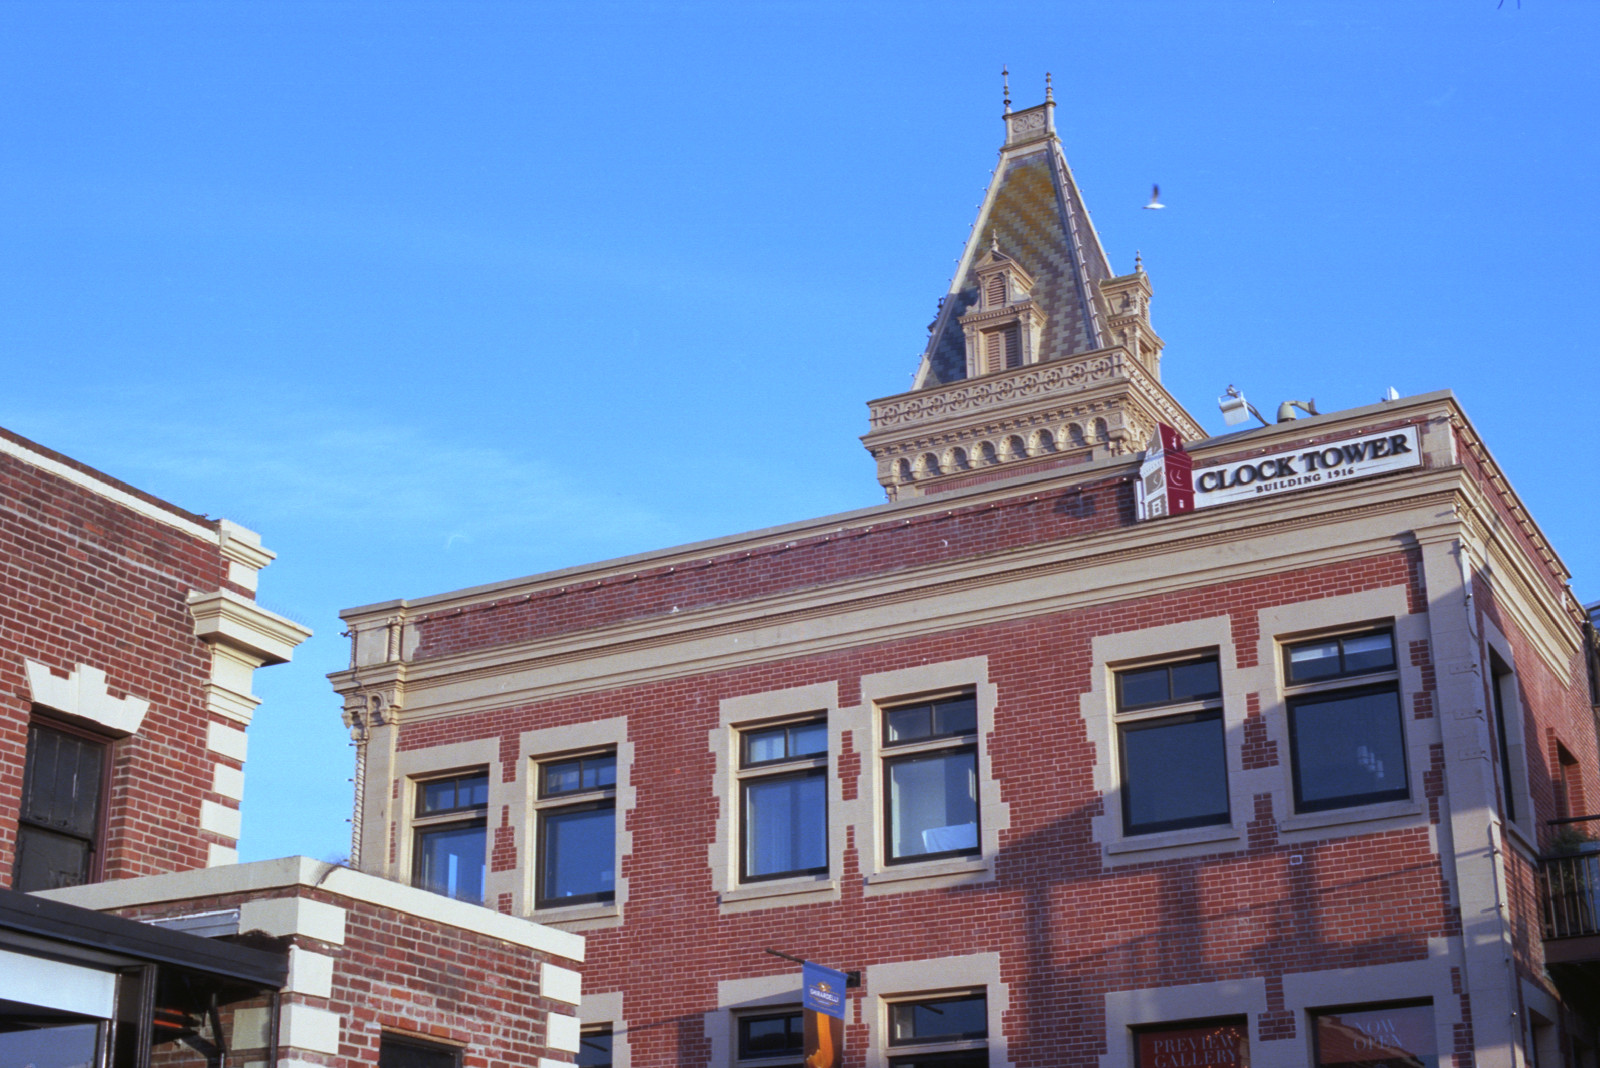 View of clock tower at Ghirardelli Square.